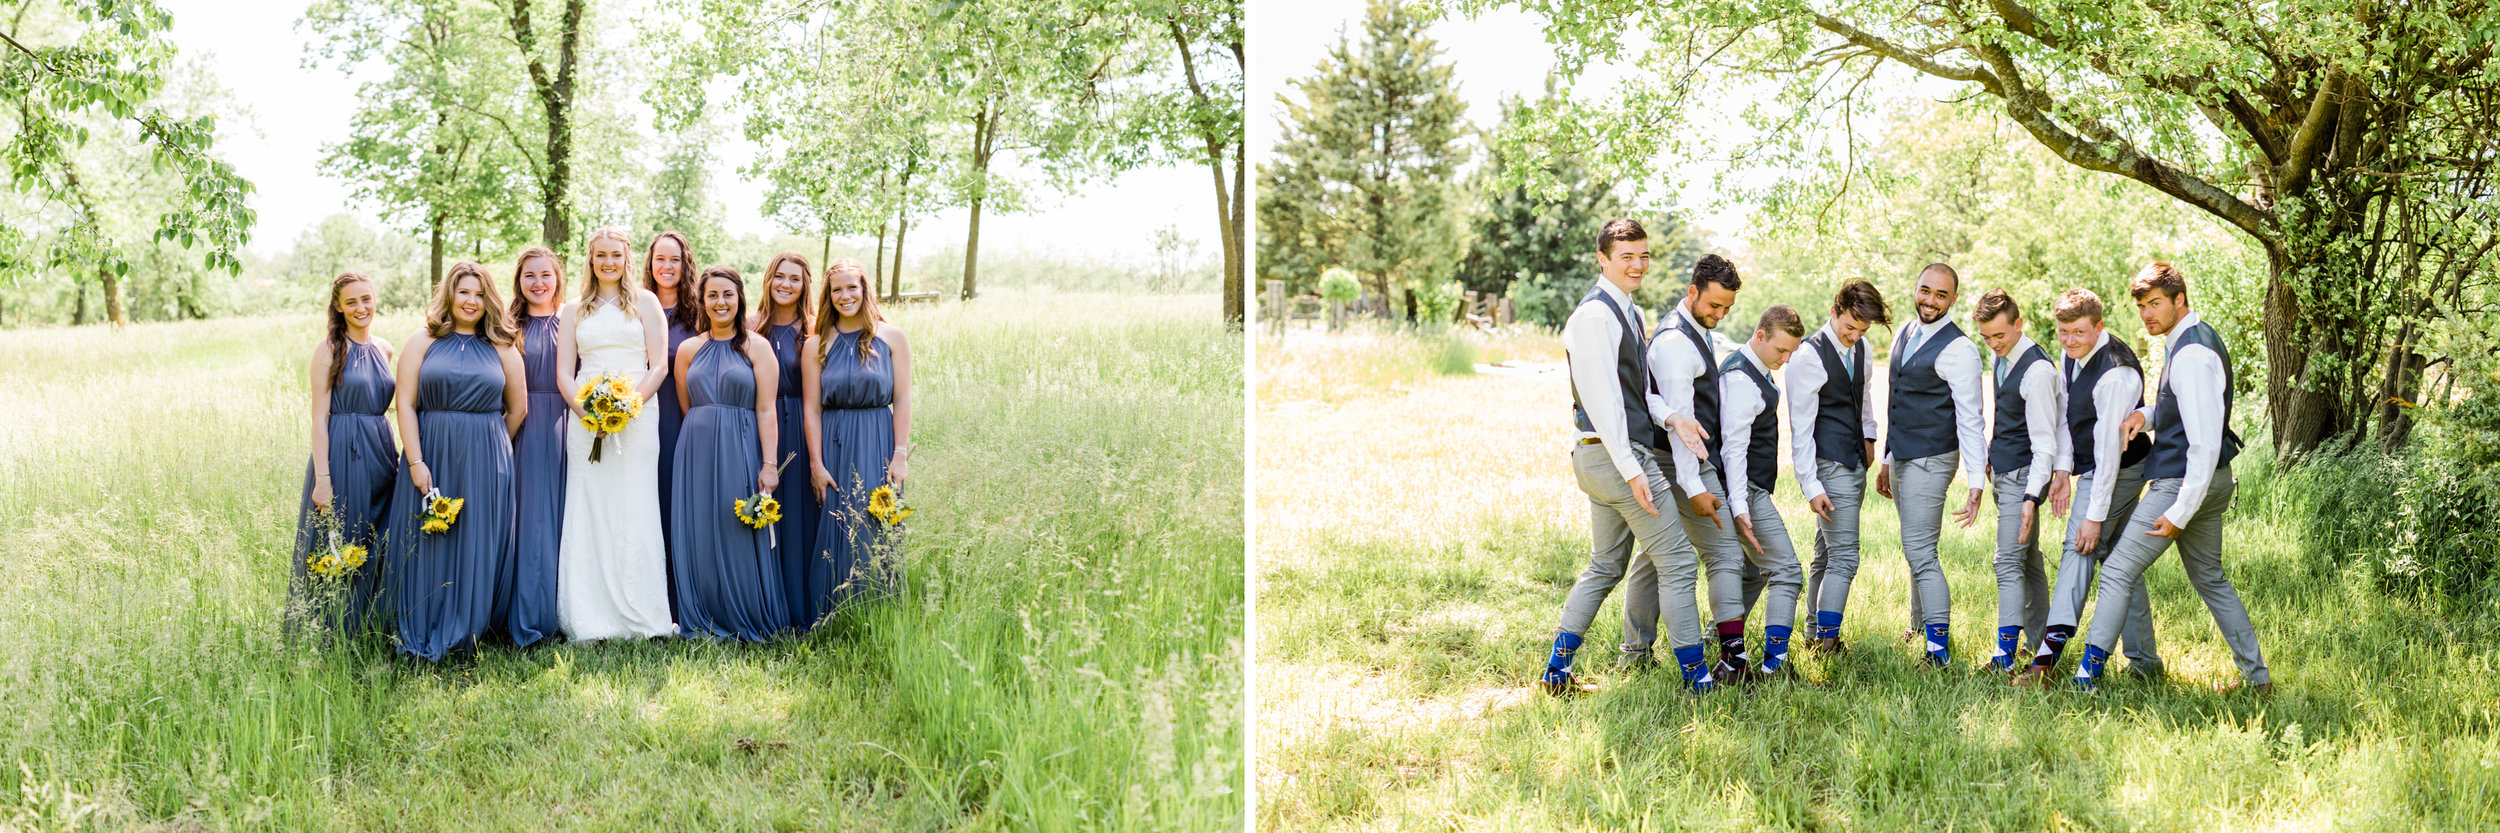 Kansas city wedding photographer 6.jpg